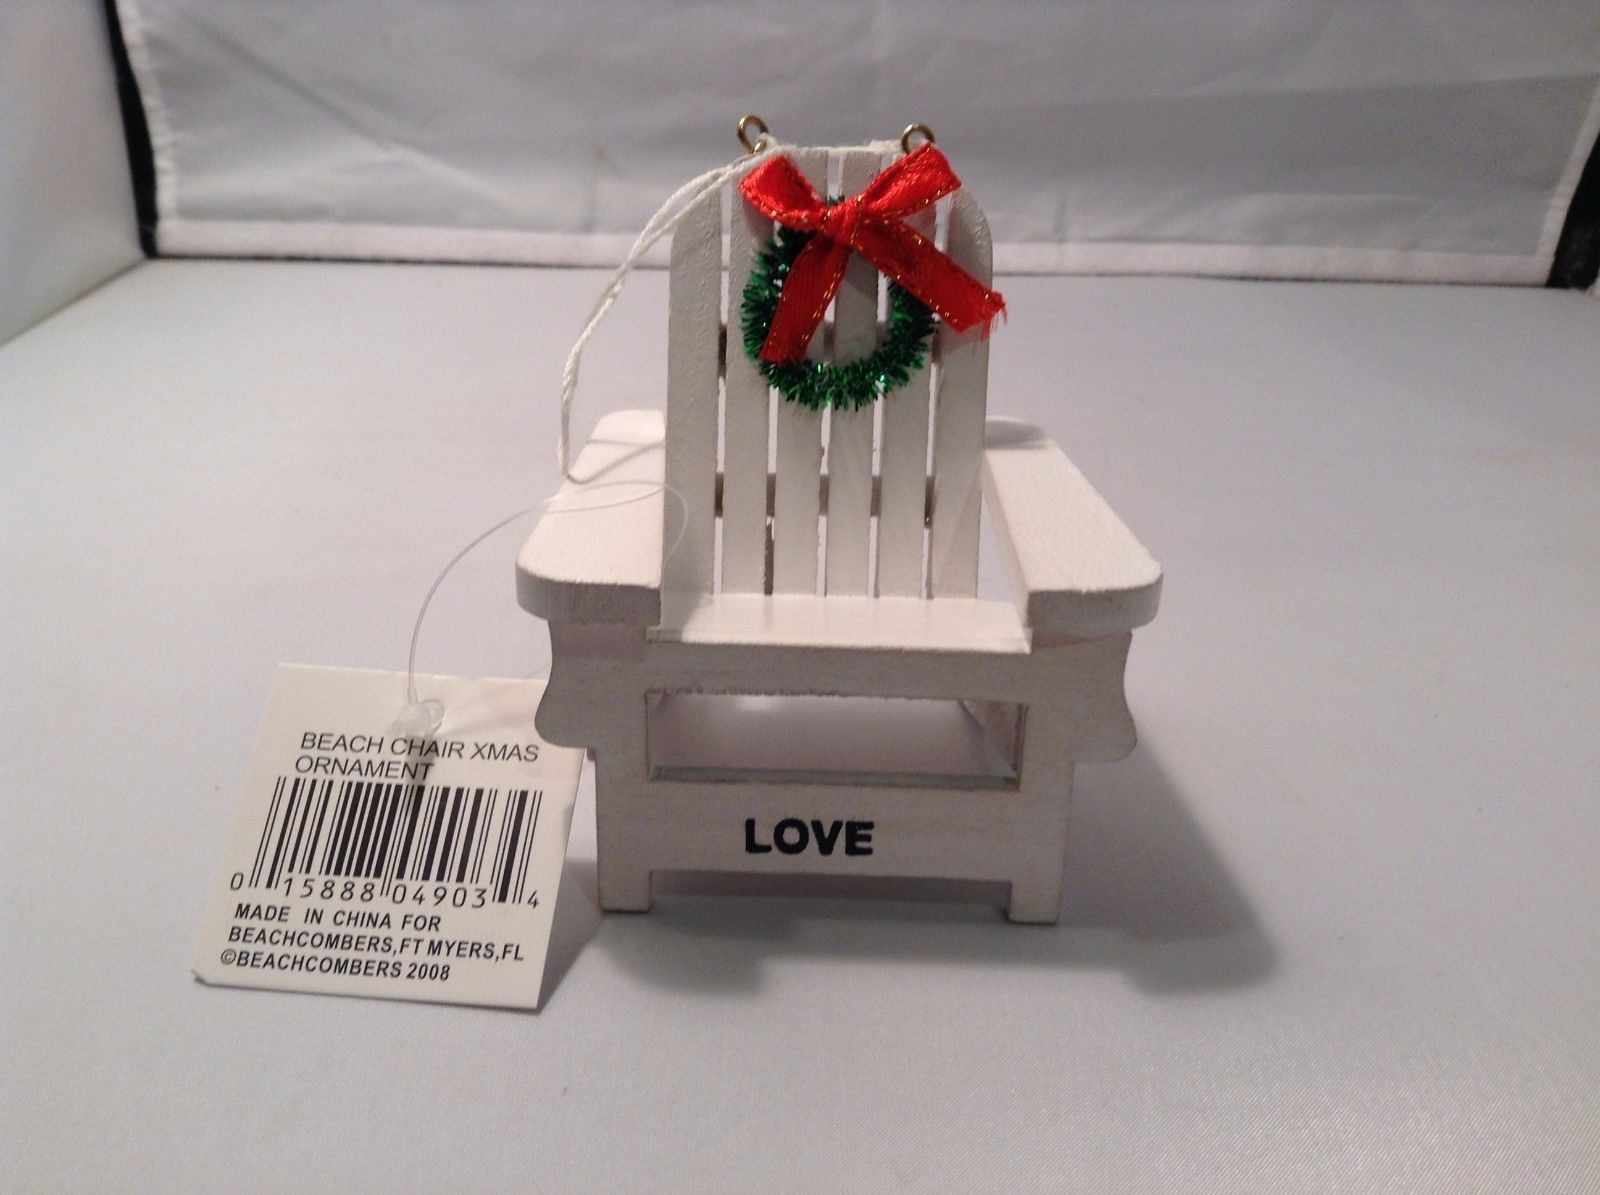 White Adirondack beach chair ornament with holiday greens wreath and LOVE